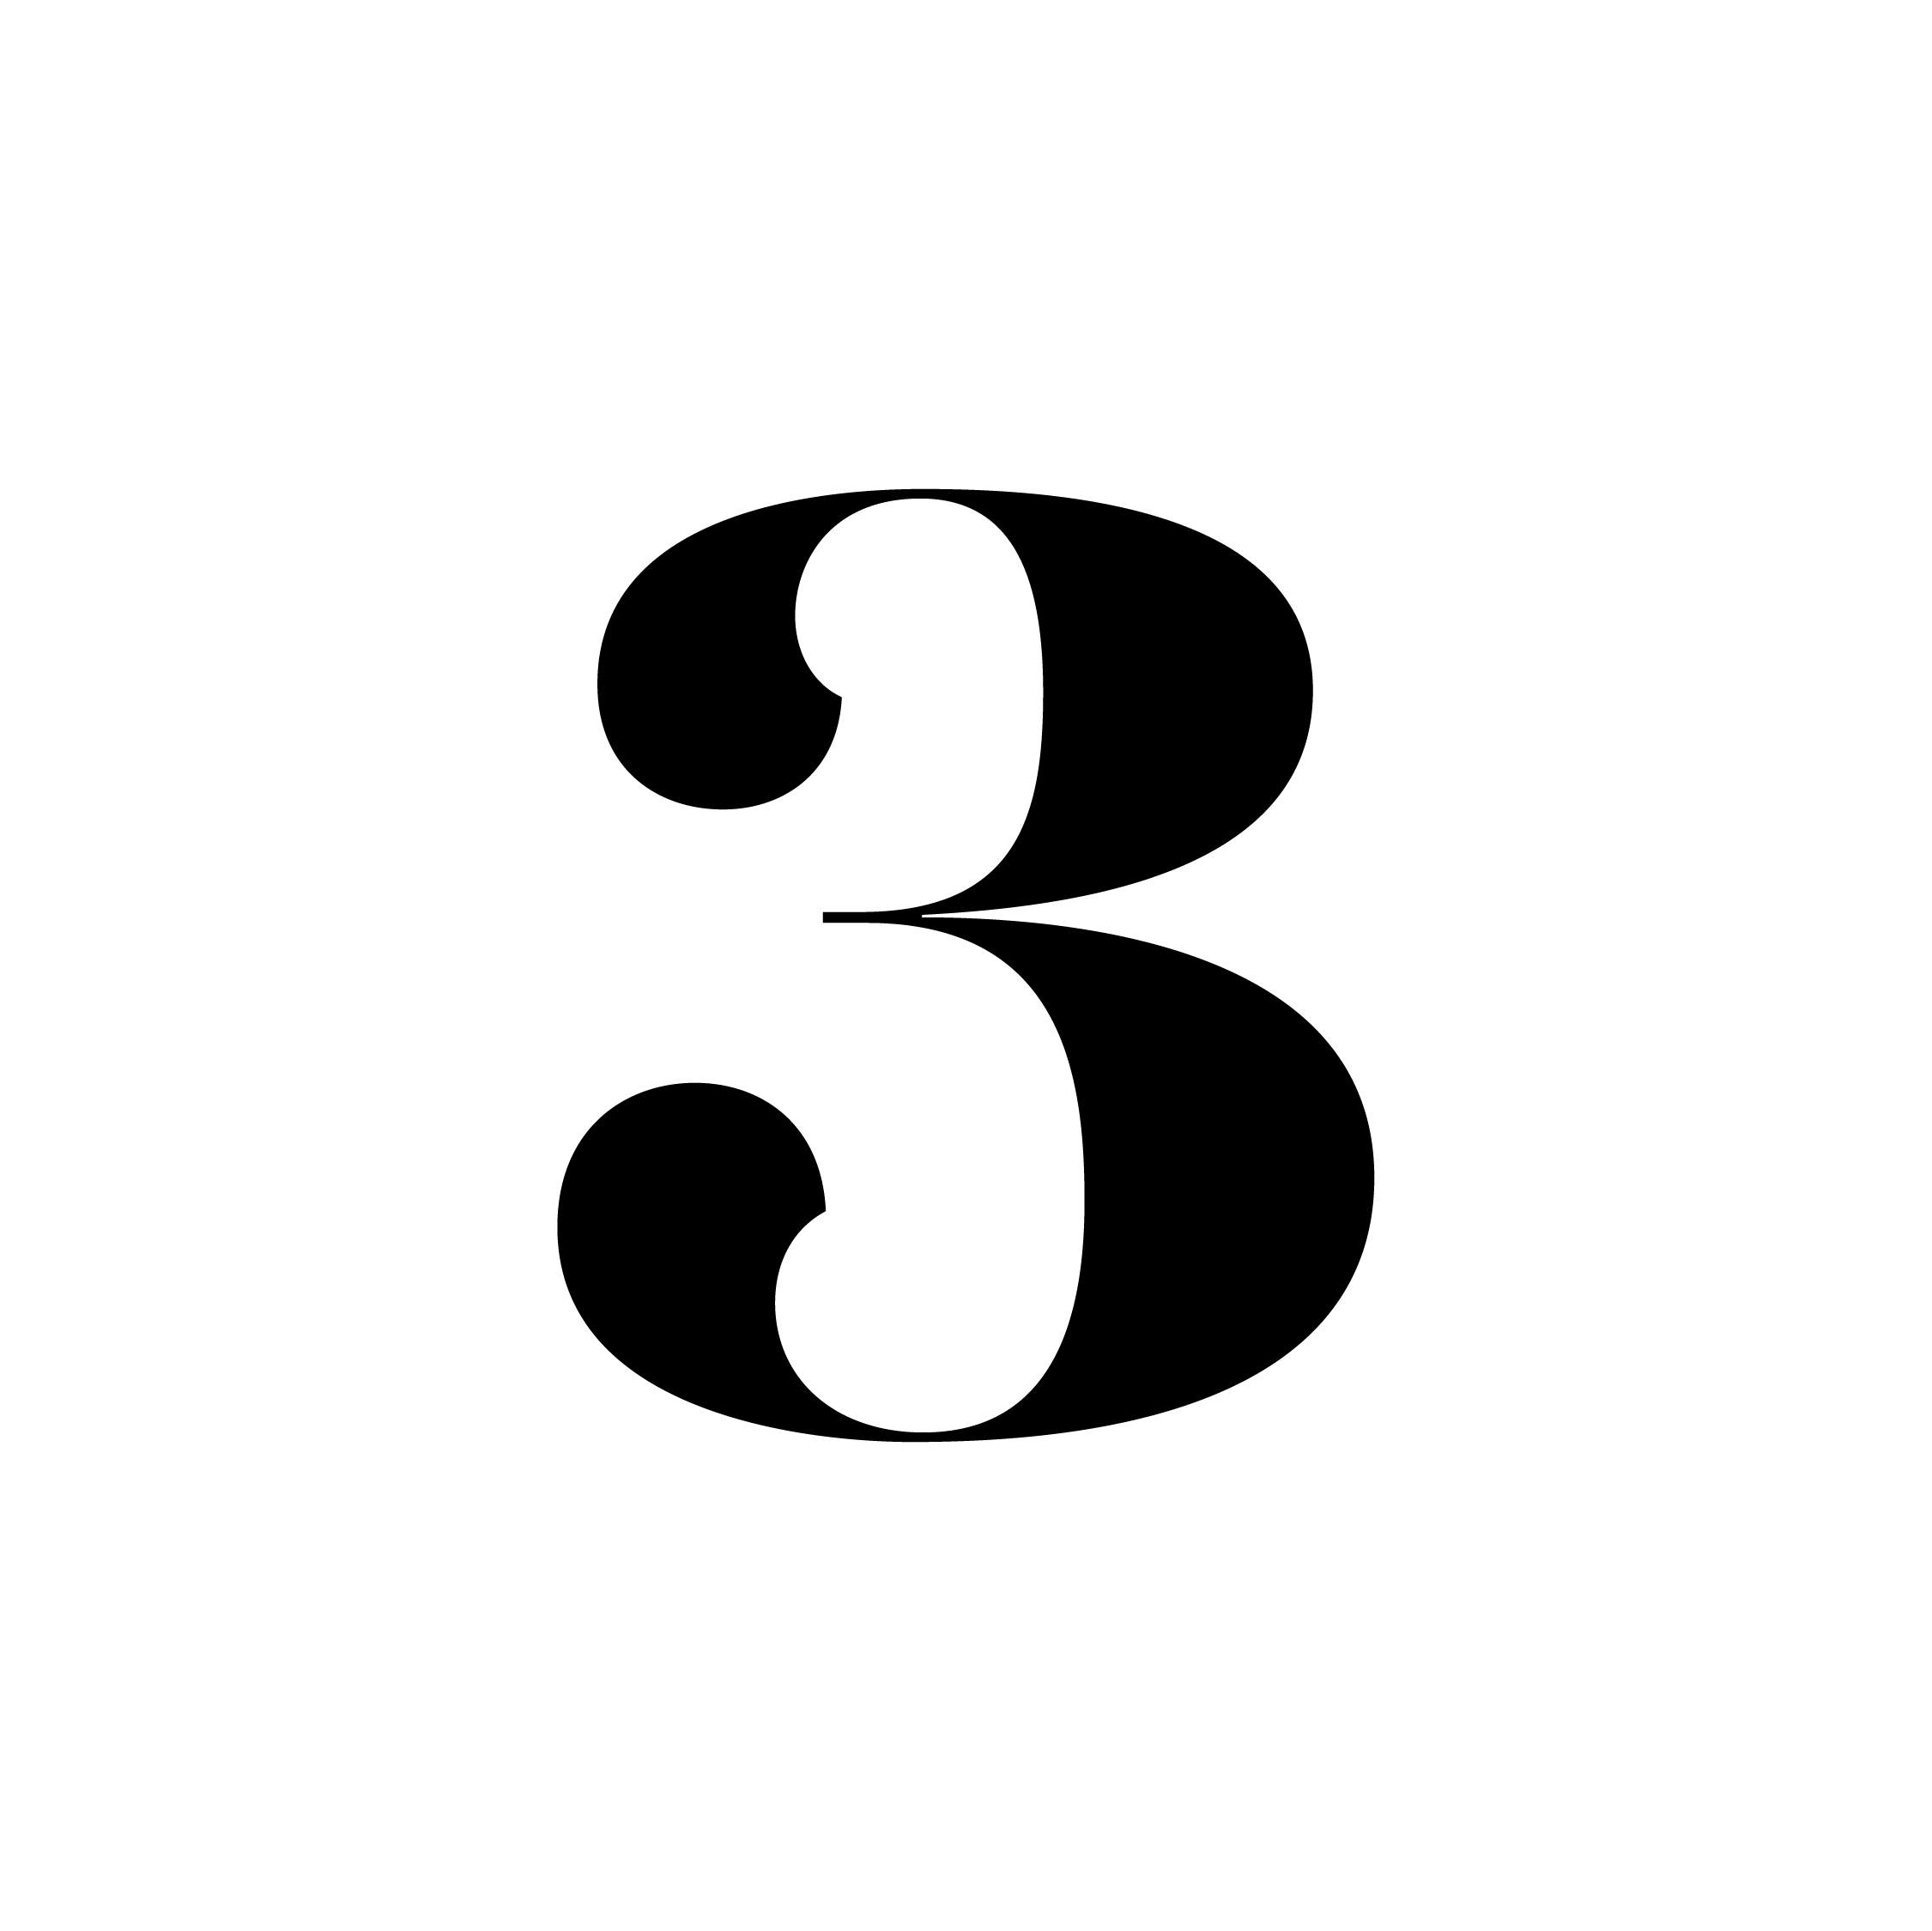 Numbers-03.png